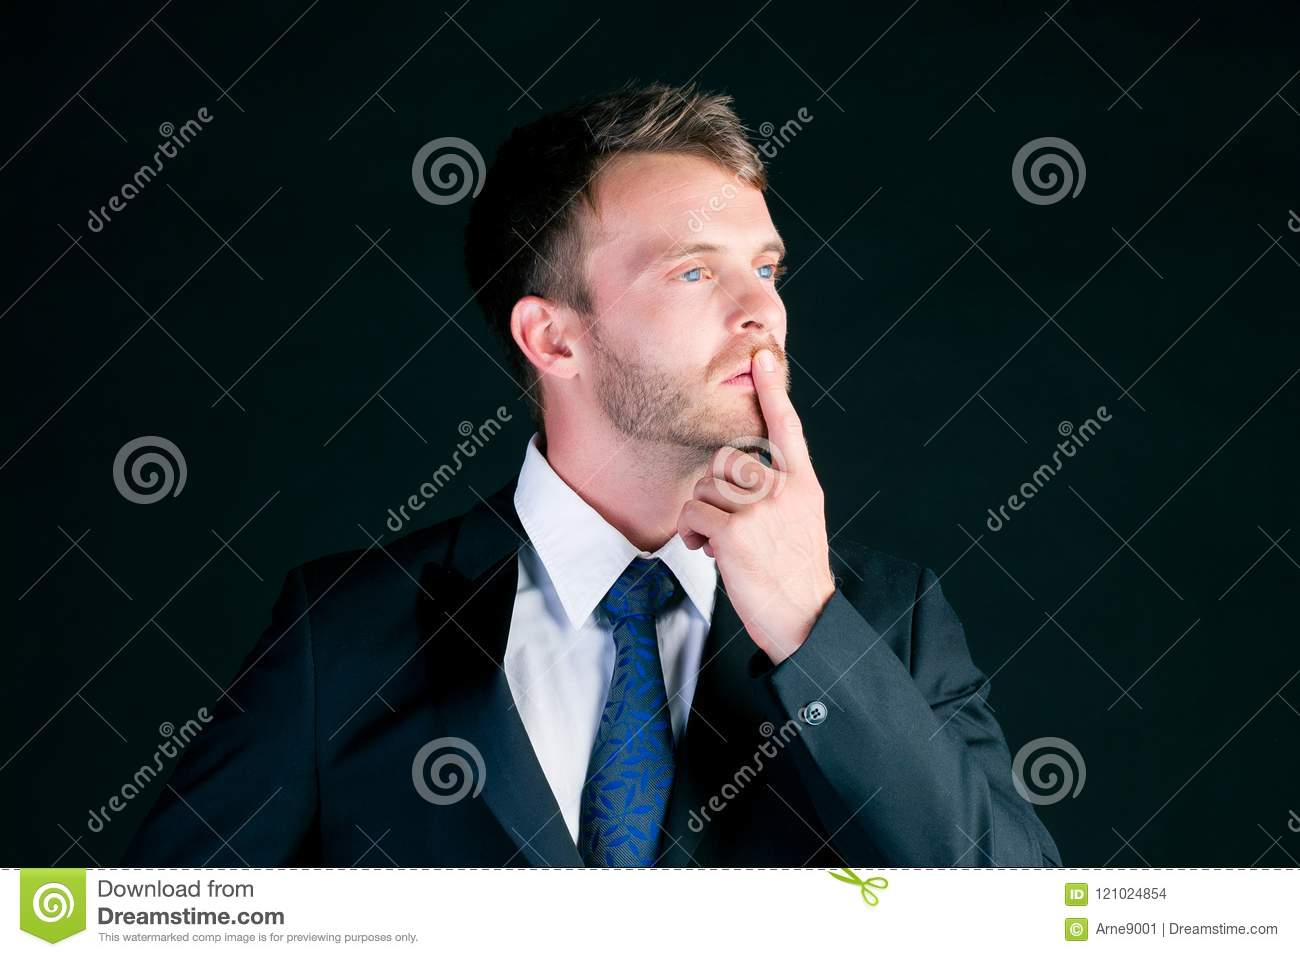 Man or manager in suit thinking concentrated